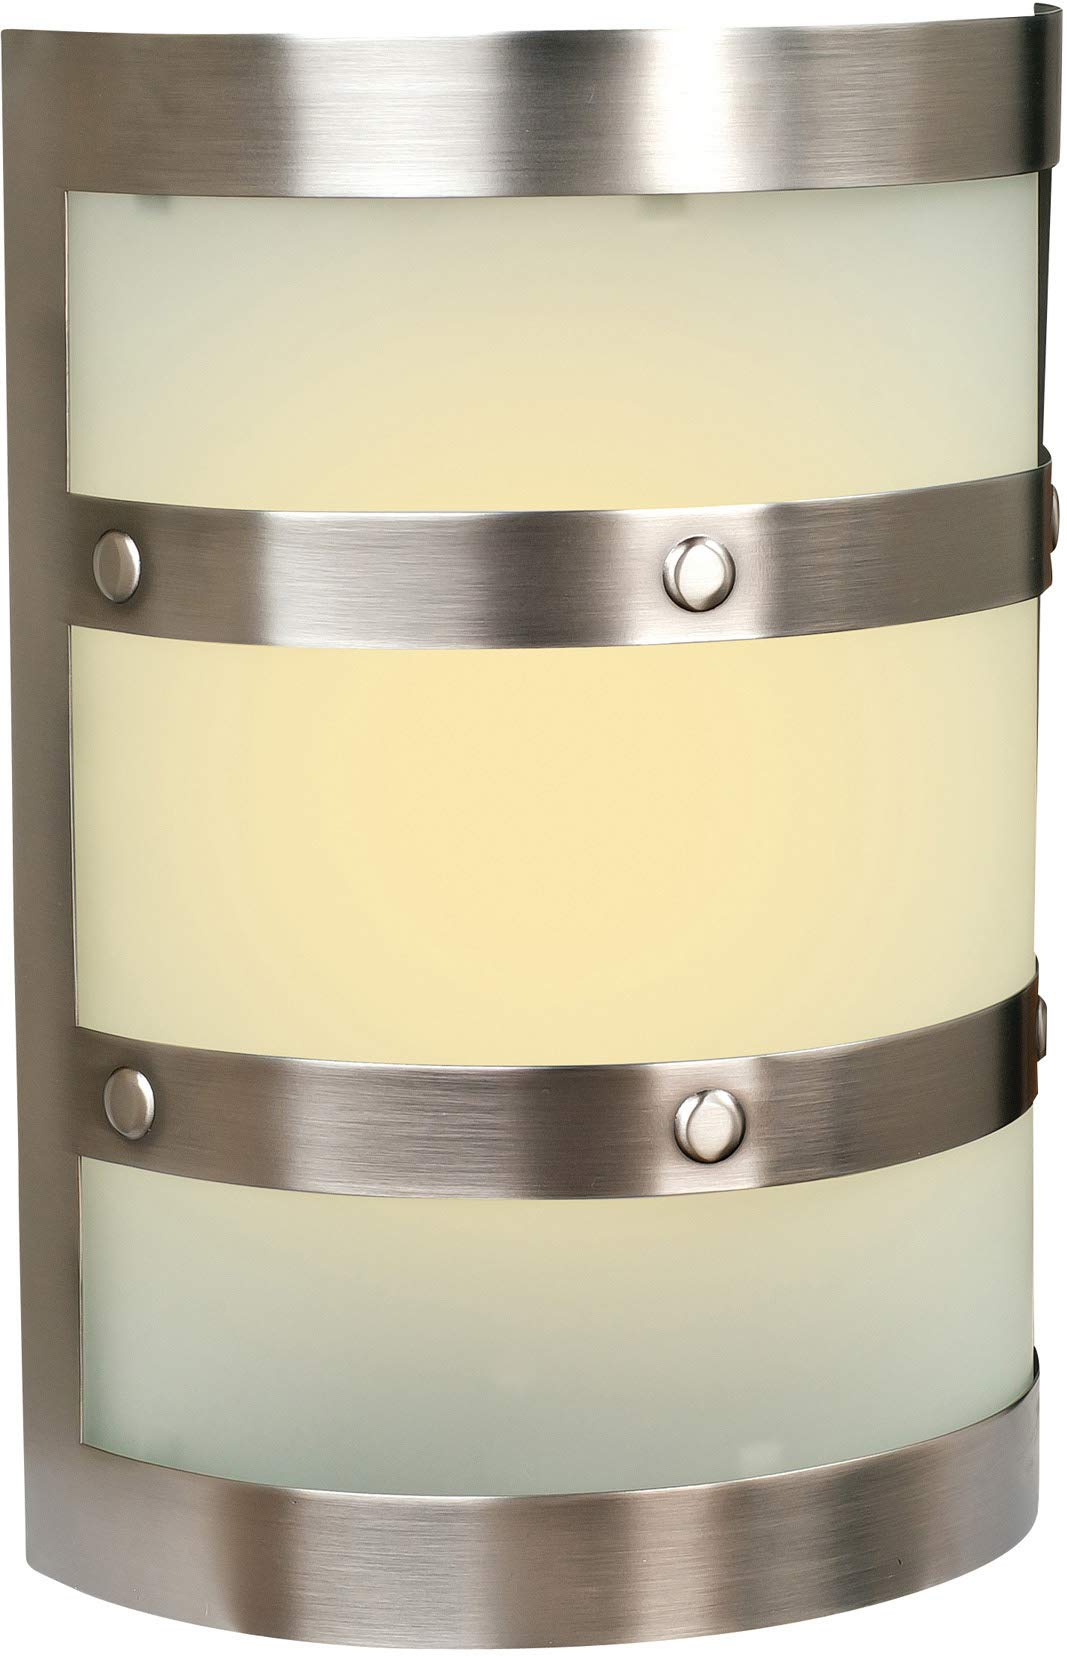 Craftmade ICH1405-PT Illuminated Chime System Half Cylinder Lighted LED Door Chime, Pewter (9.5''H x 6.75''W)